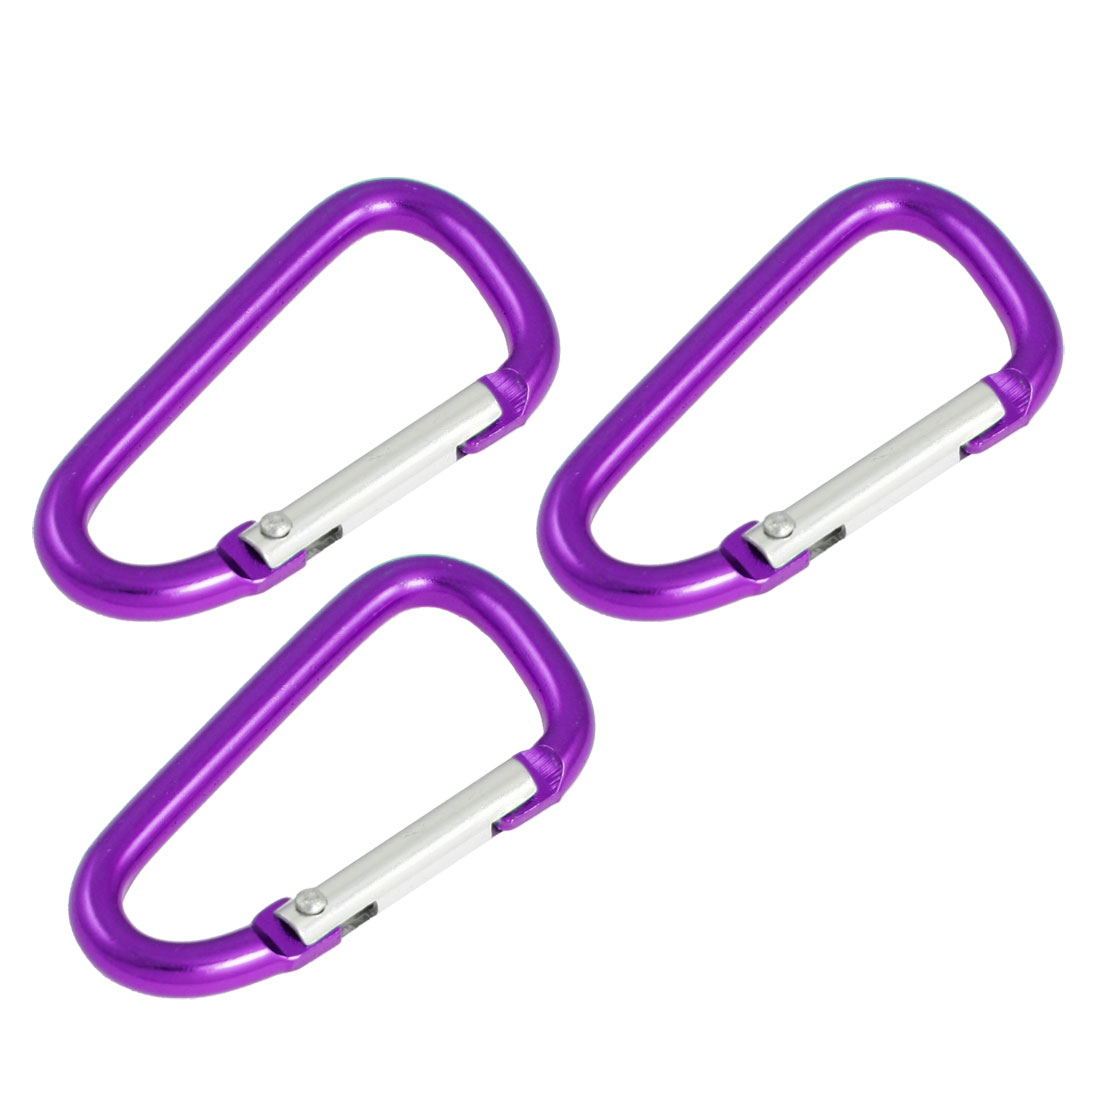 3 Pcs 5.8cm Long Purple Spring Loaded Gate Aluminum Alloy Carabiner